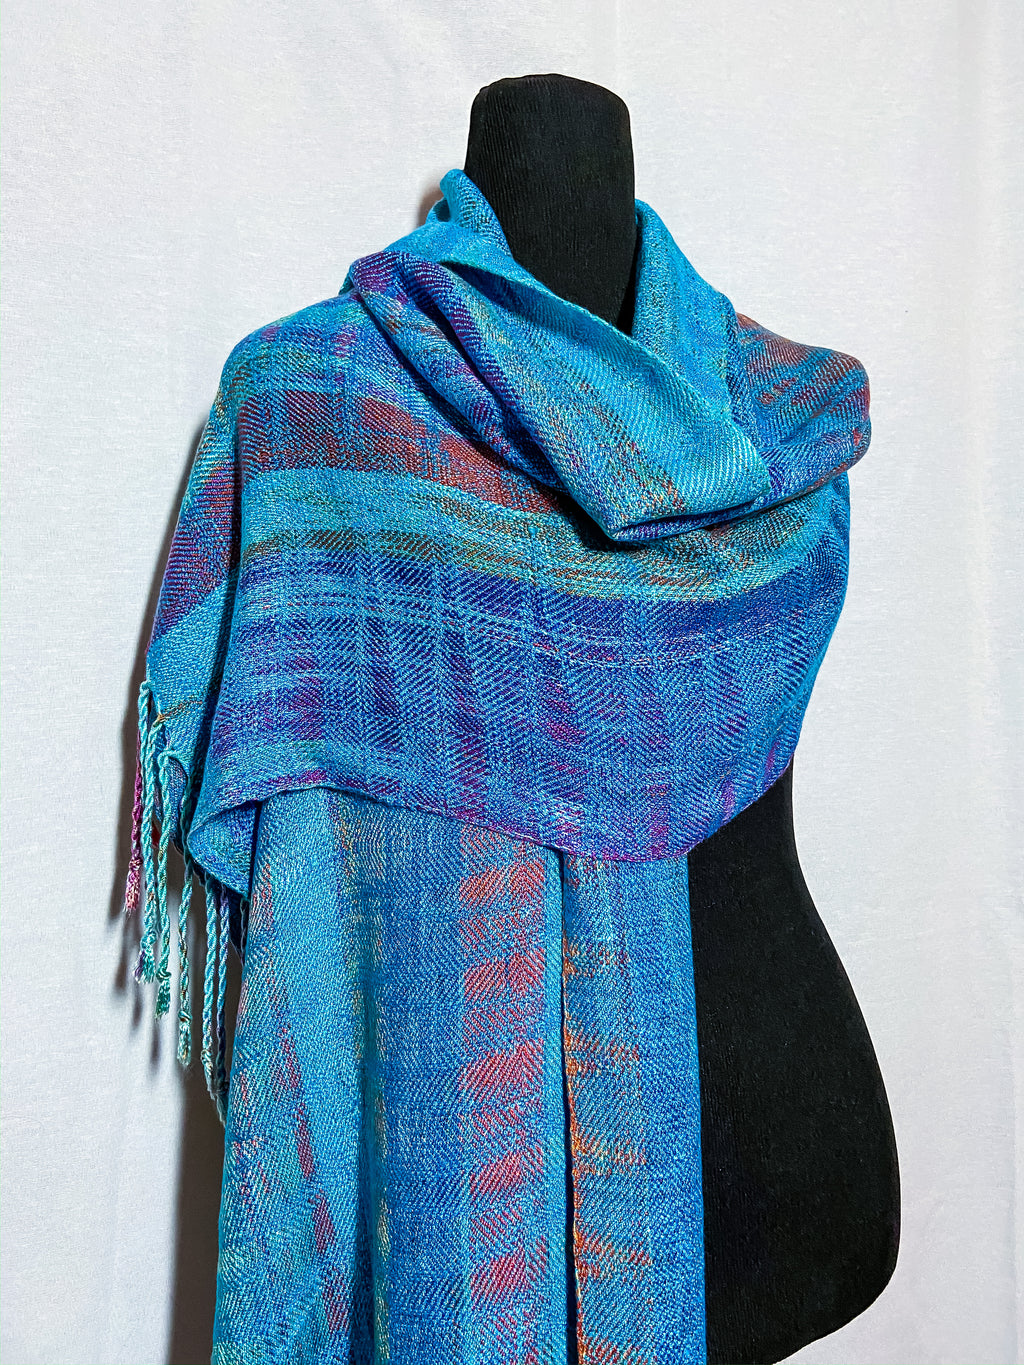 Malachit Kingfisher Mini Shawl - Sydney Sogol, Wearable Art, Mini Shawls, malachit-kingfisher-mini-shawl,